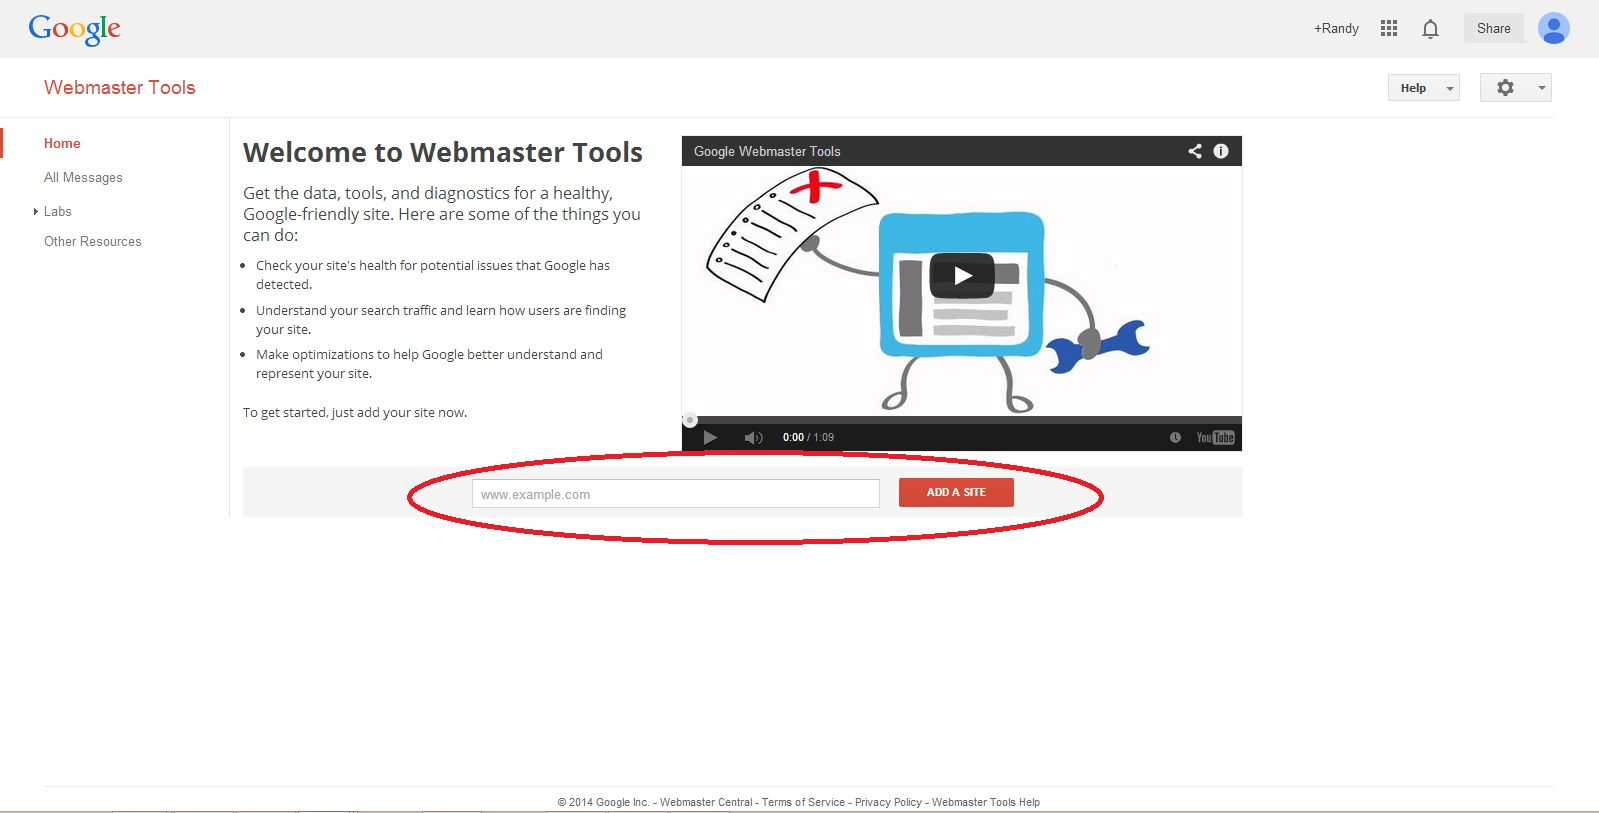 Google Webmaster Tools Home Page